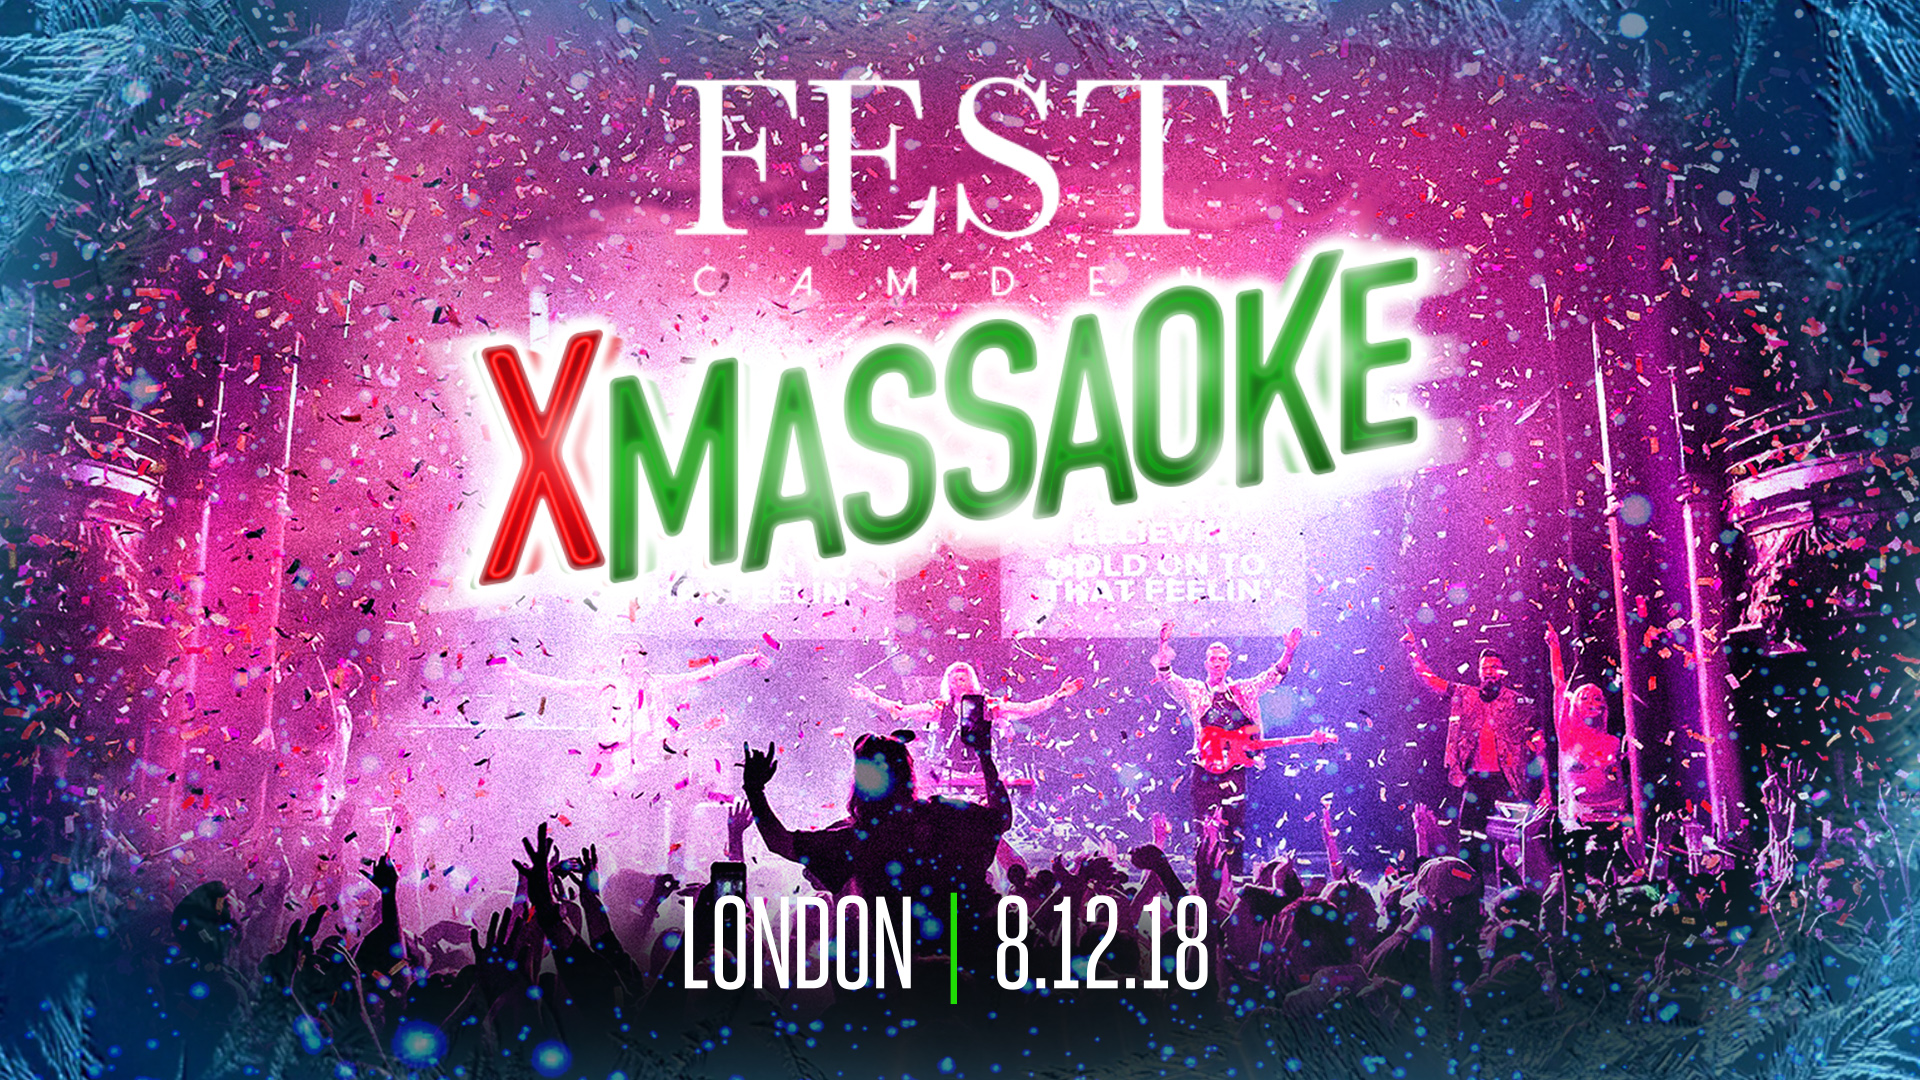 Xmassaoke18-London-FEST-v1.jpg